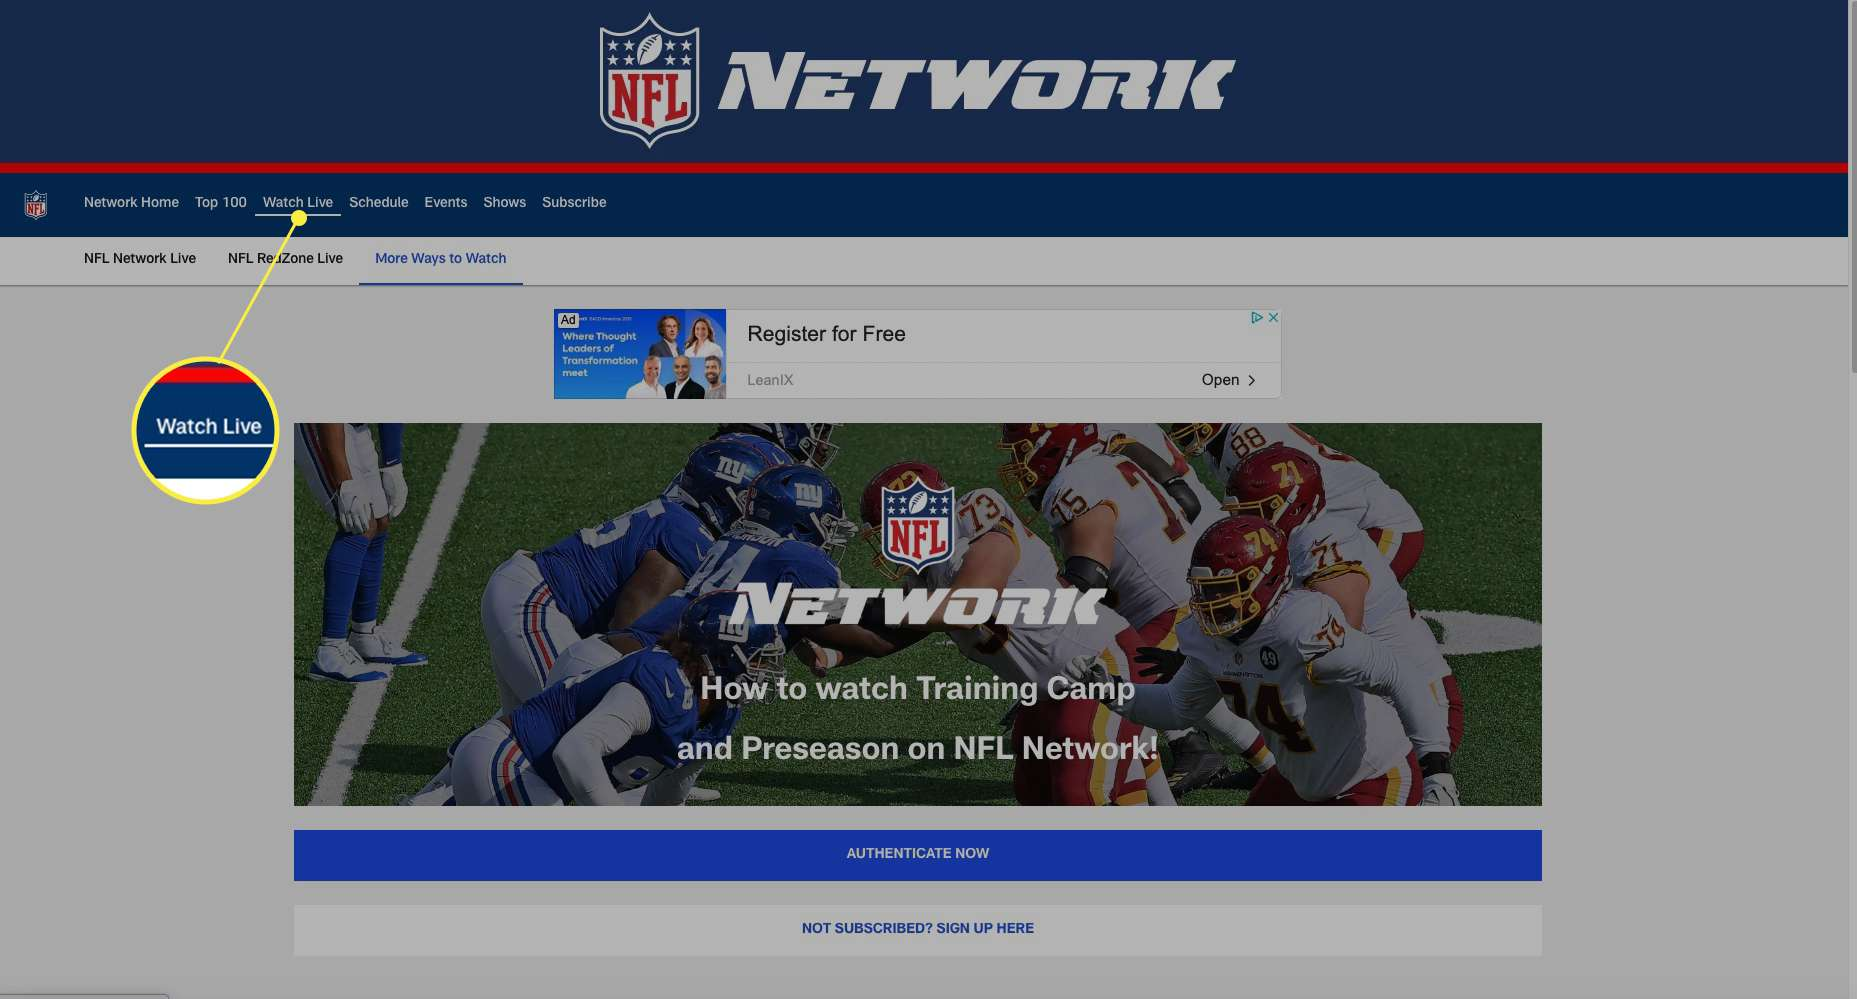 NFL Network website with Watch Live highlighted